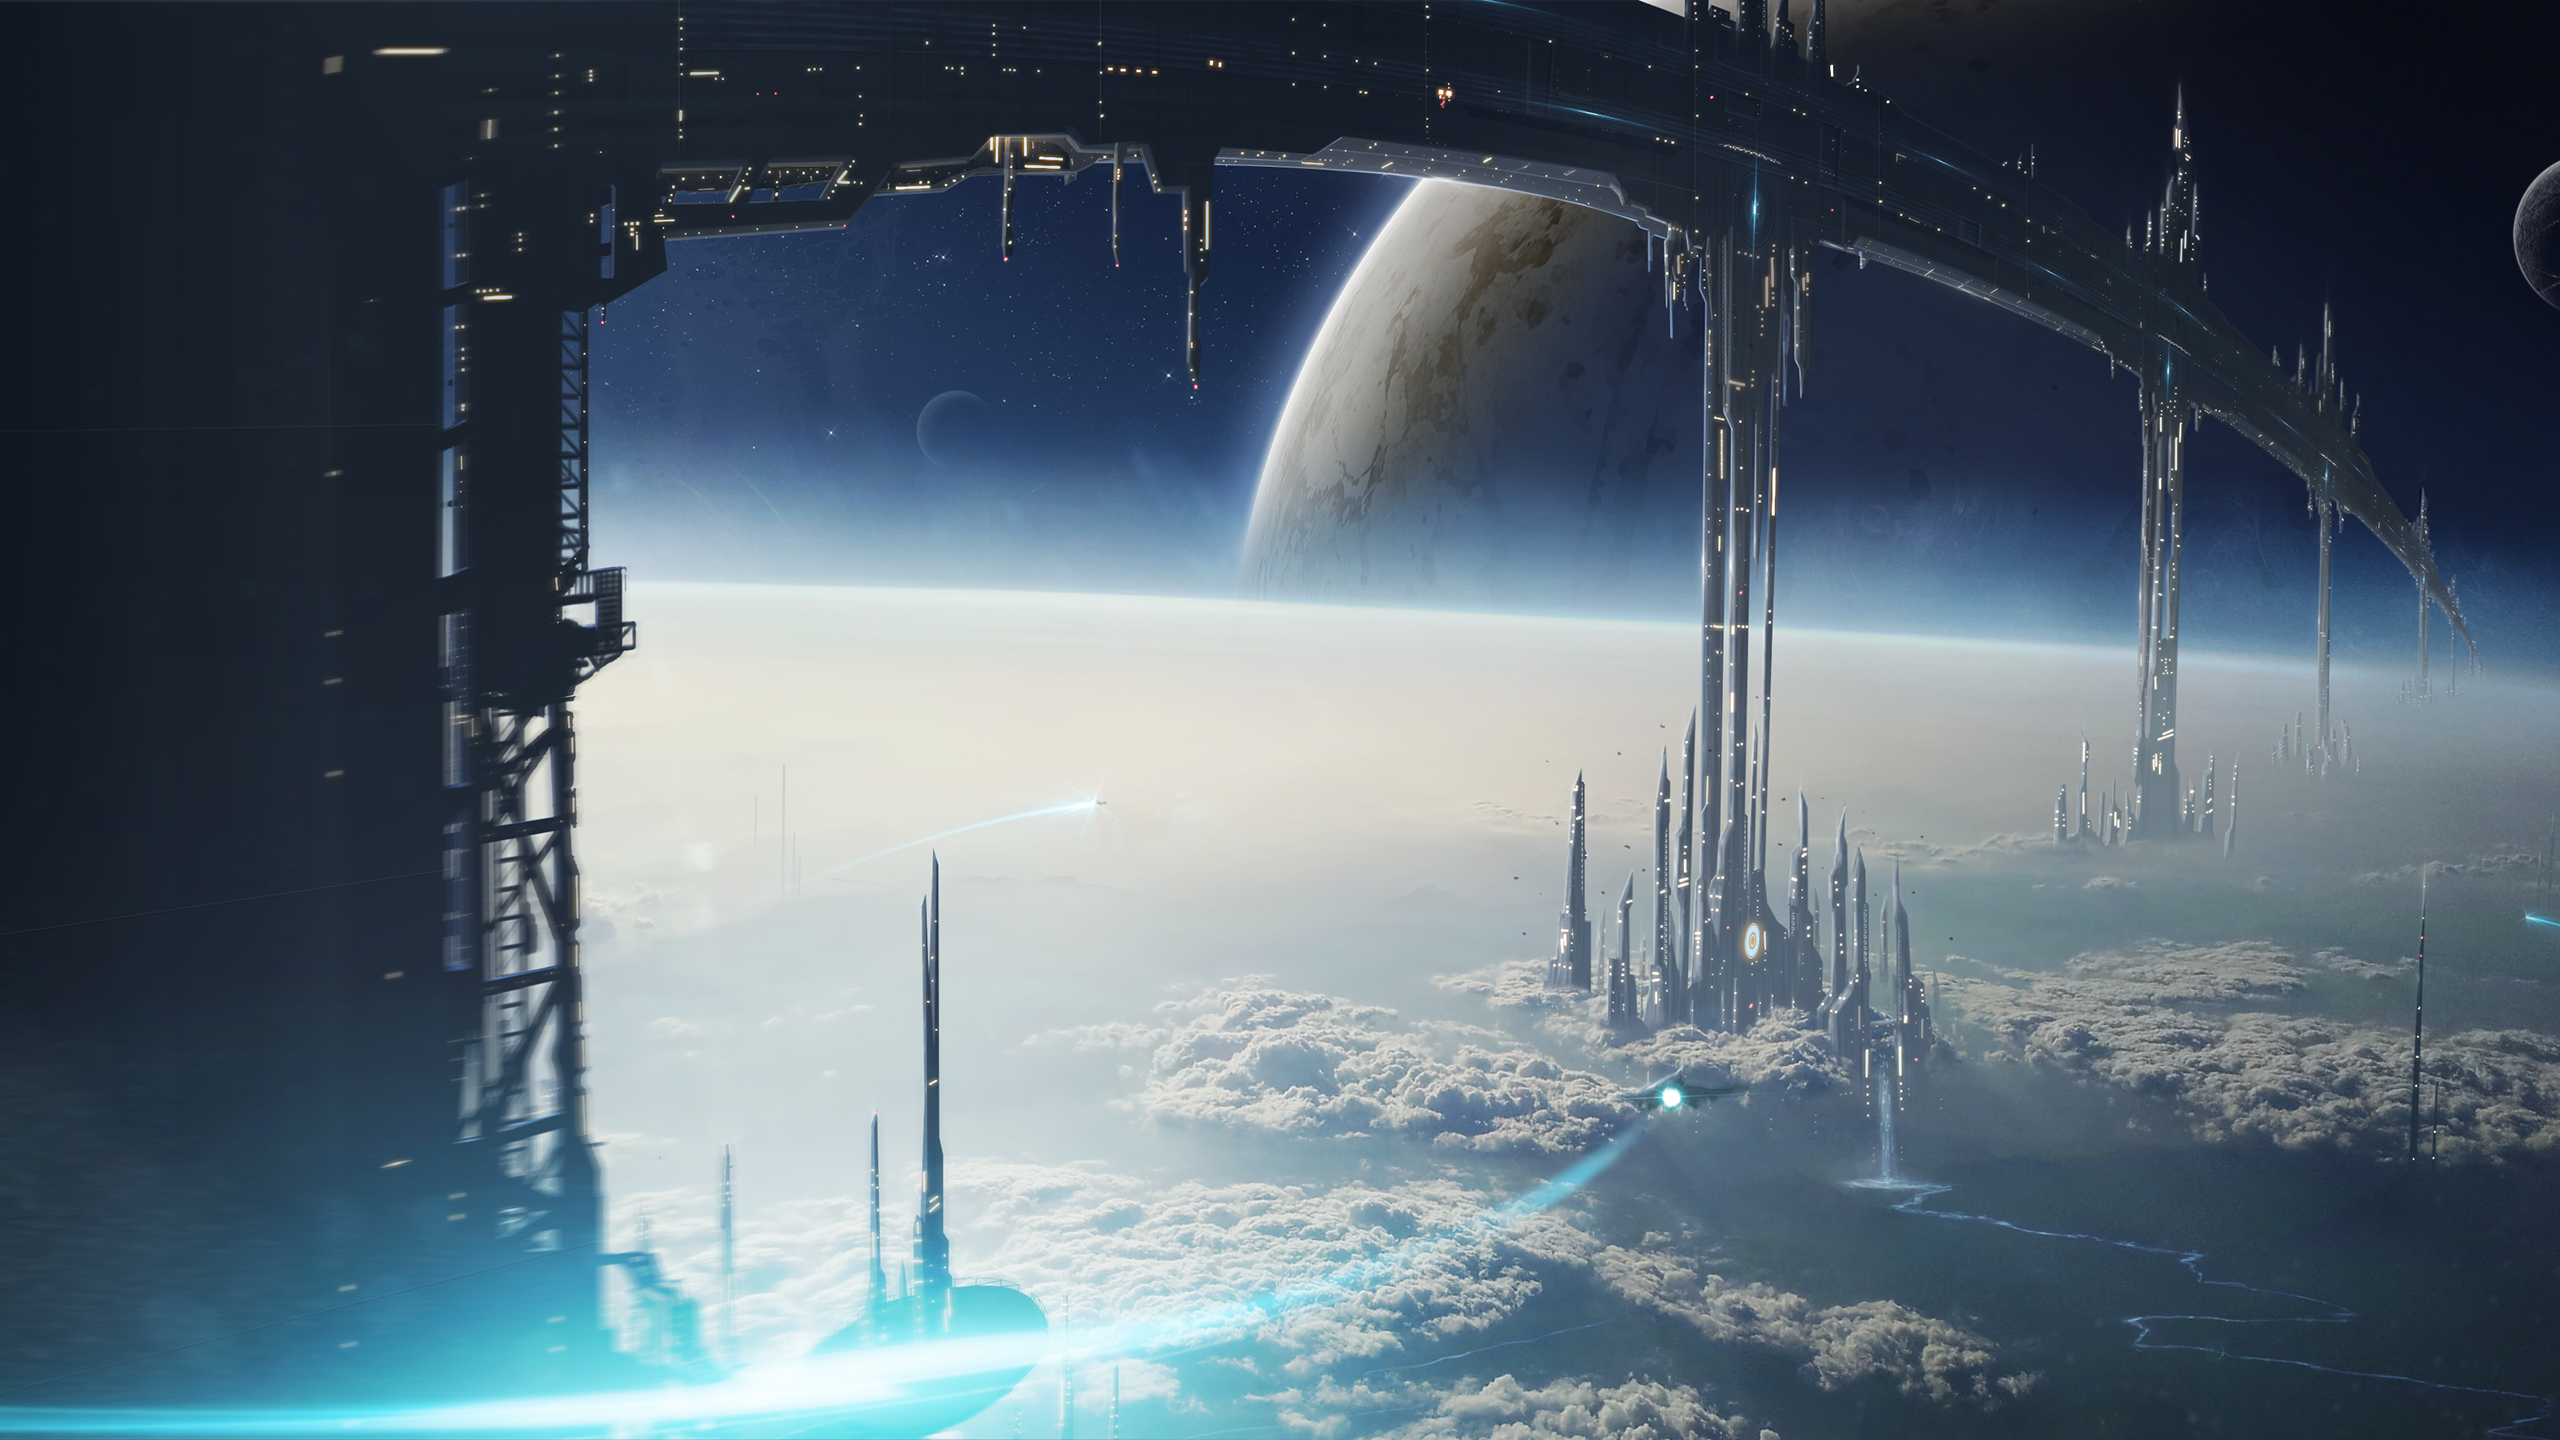 General 2560x1440 science fiction space station space planet spaceship